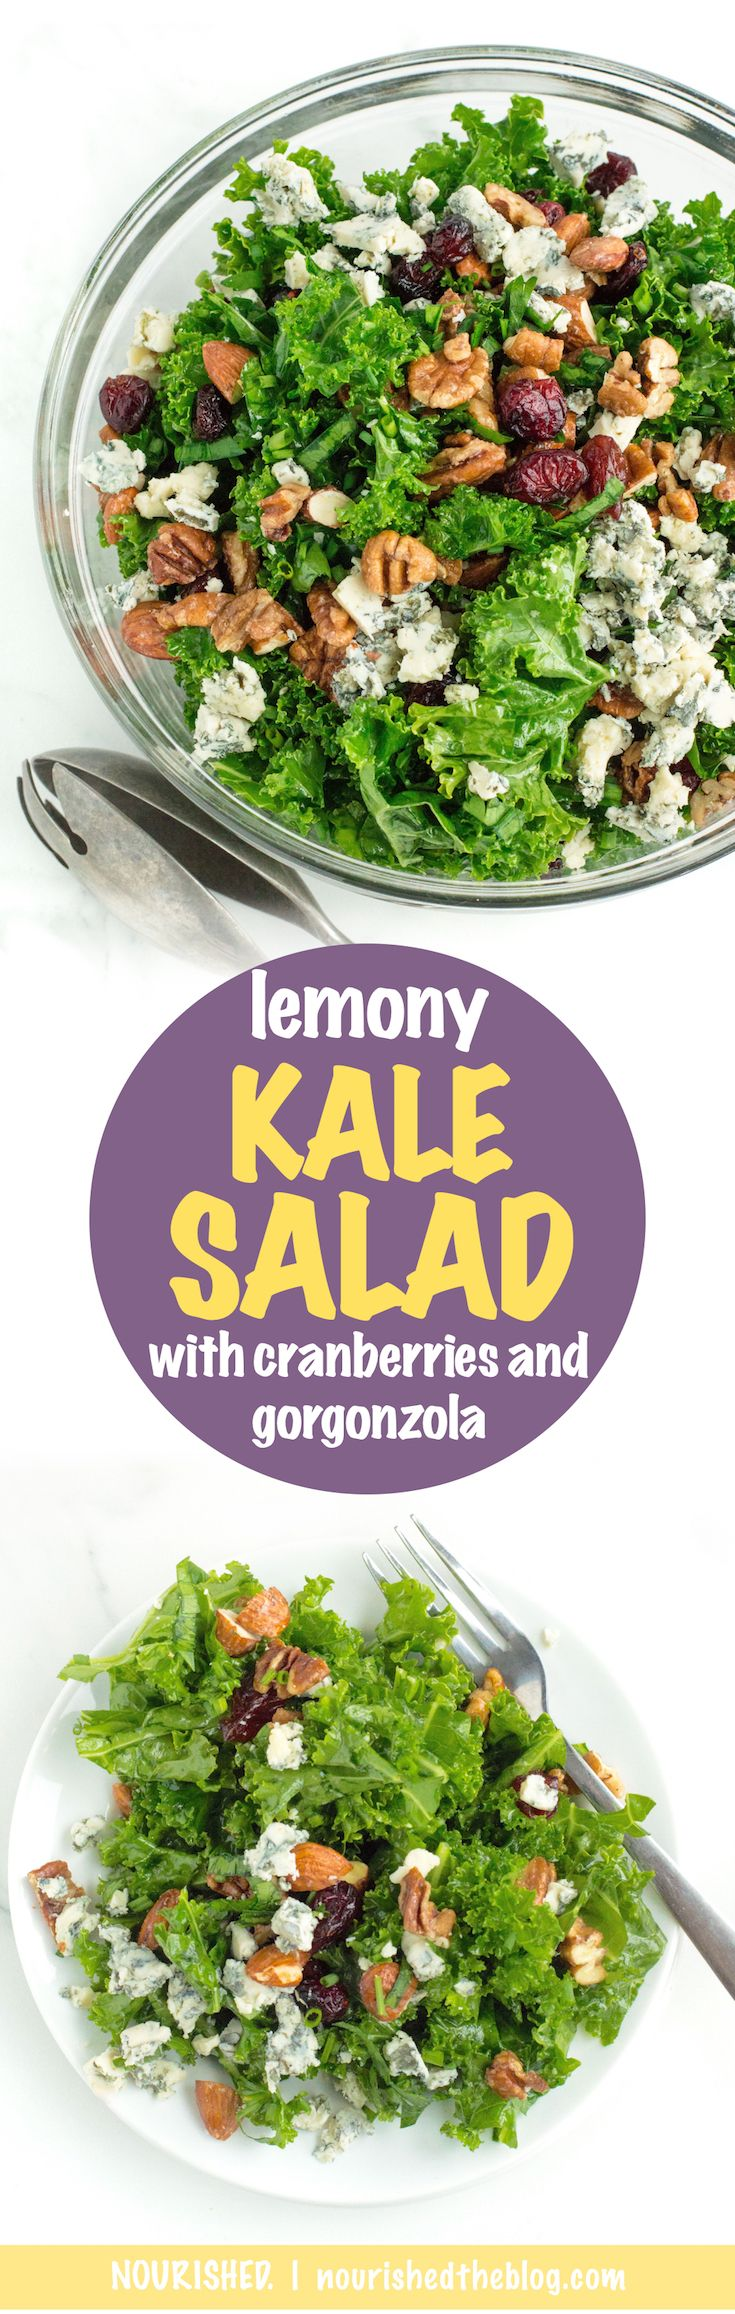 Lemony Kale Salad with Cranberries and Gorgonzola | A simple and healthy recipe for a lemony kale salad with dried cranberries and gorgonzola and candied nuts. This easy to make salad is gluten free and vegetarian-friendly and the perfect side dish for any dinner or party.